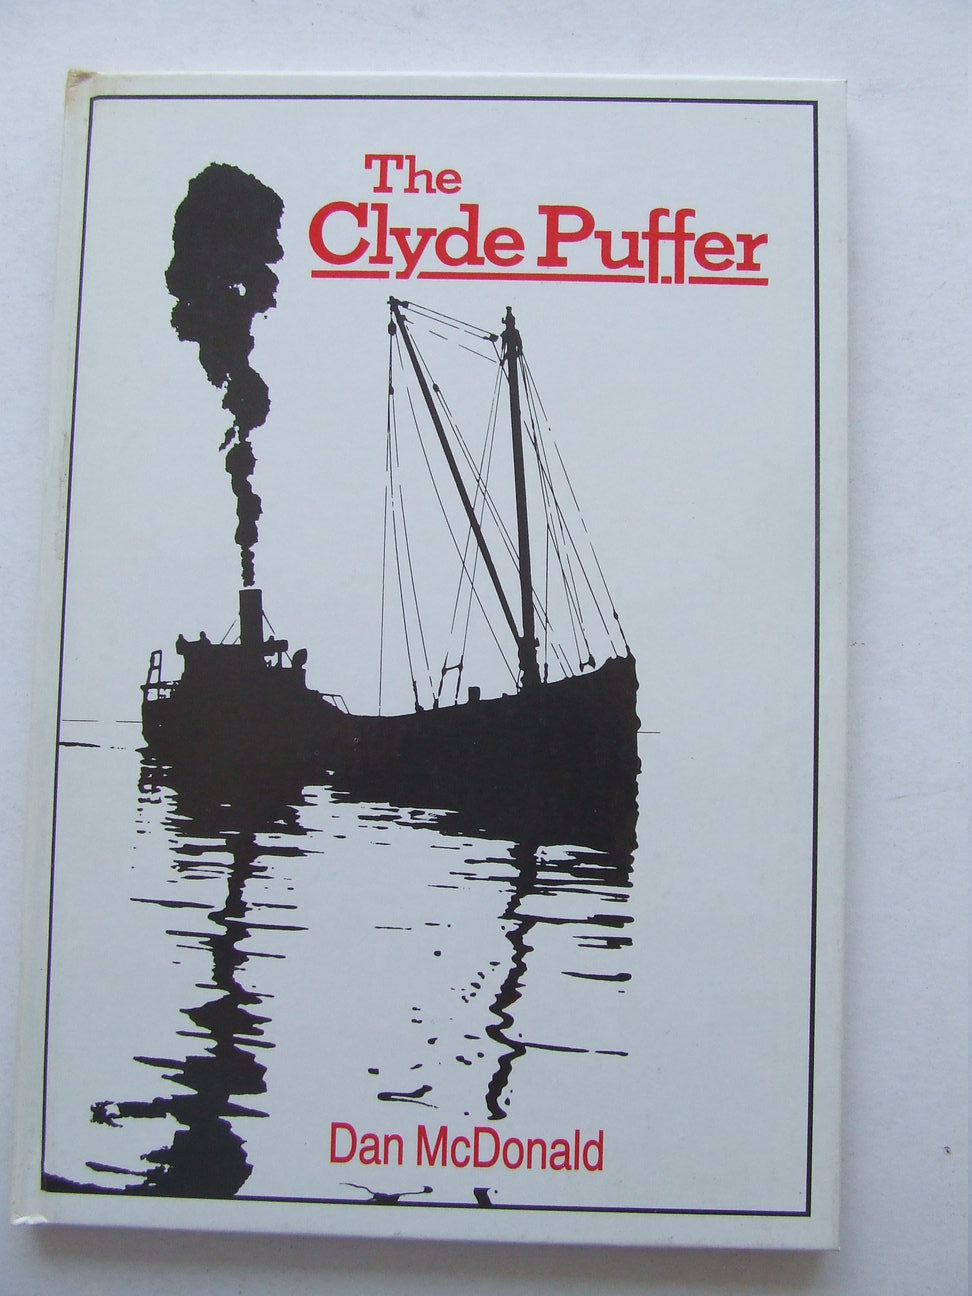 The Clyde Puffer